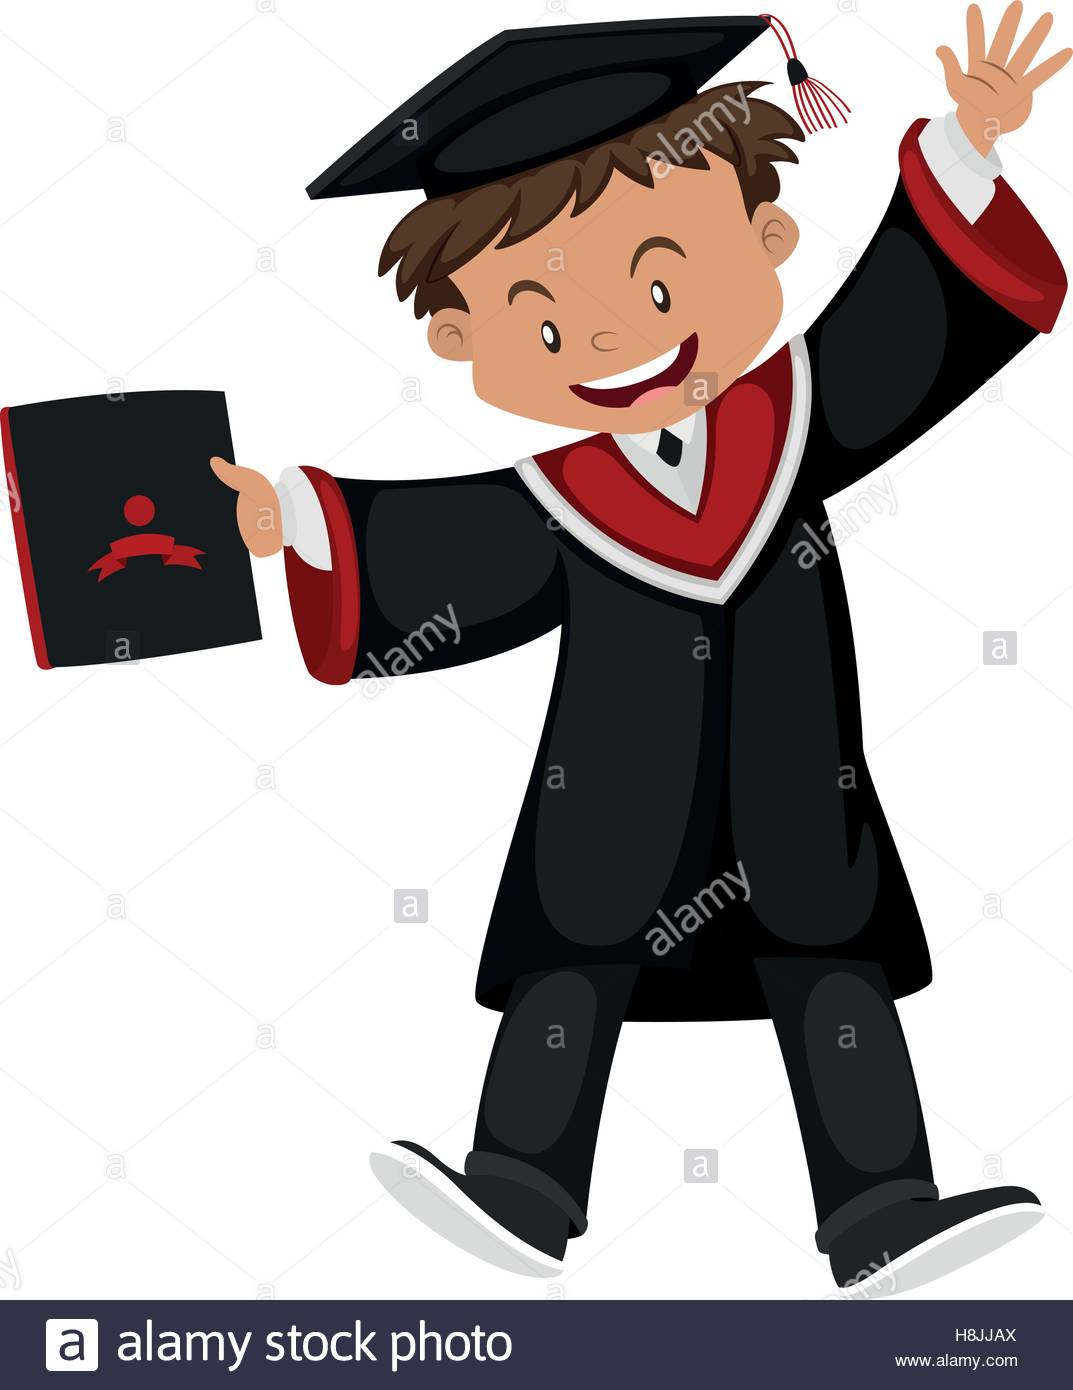 Man in black graduation gown with cap illustration Stock Vector Art.